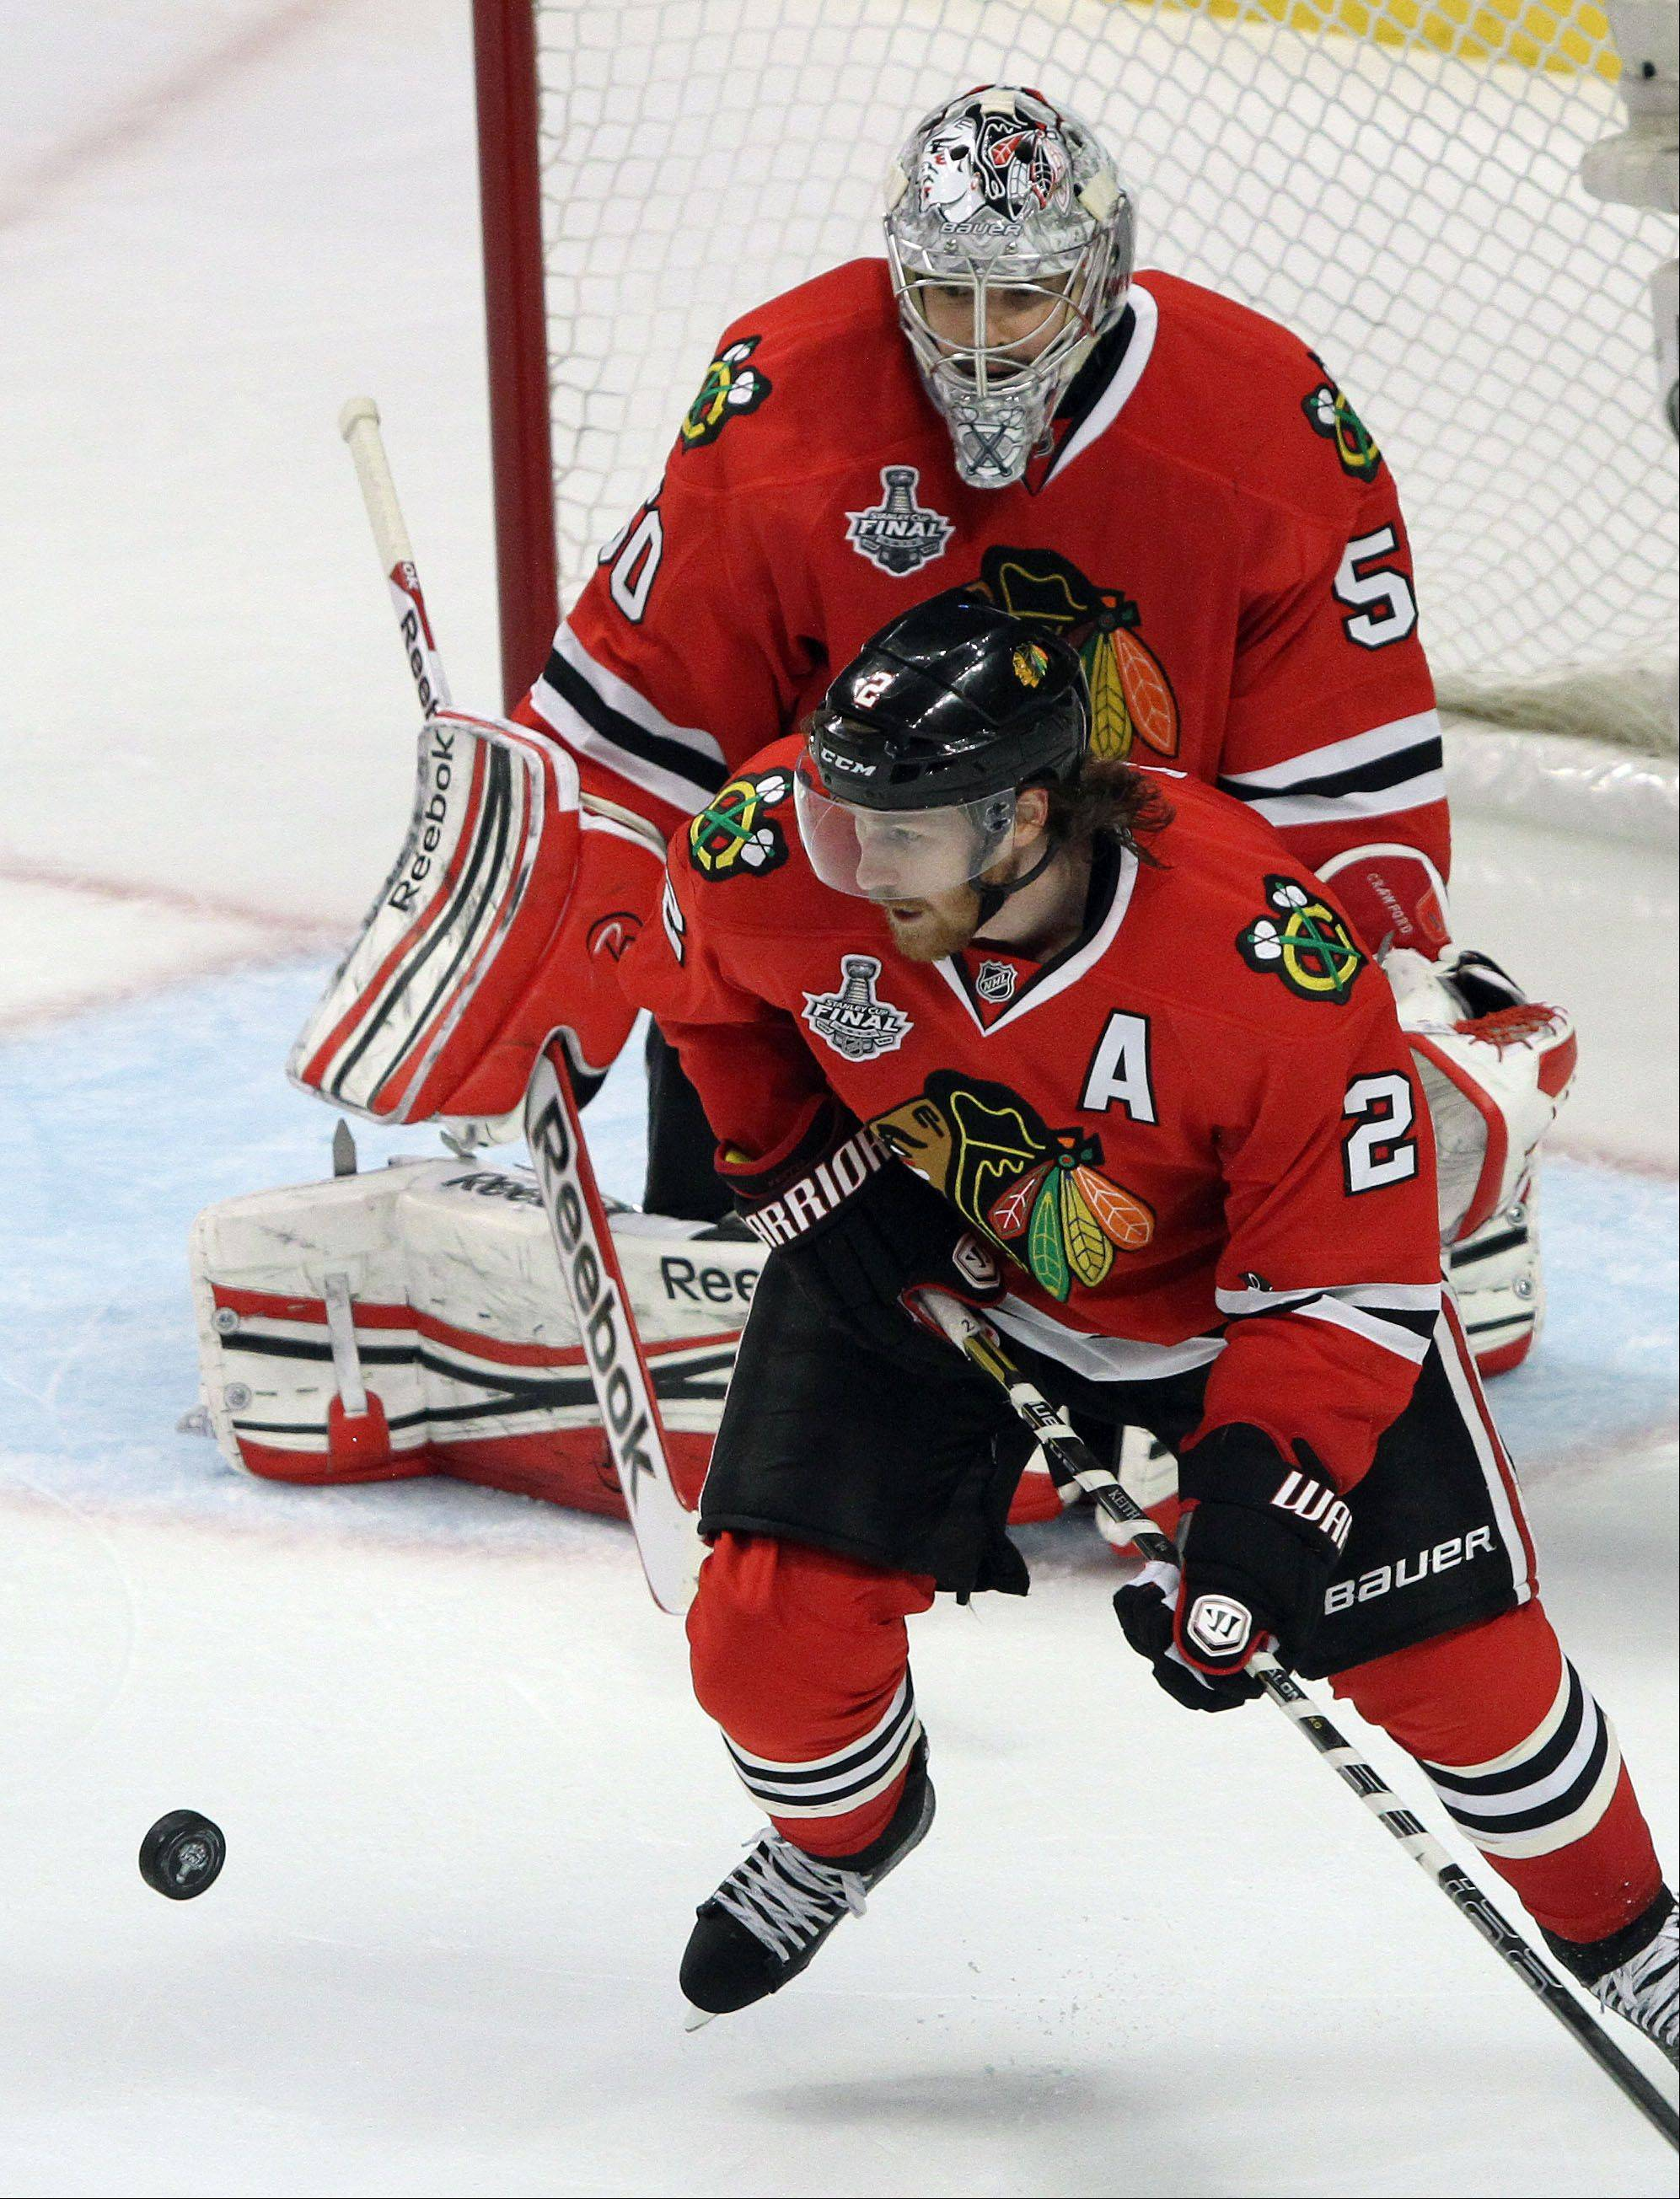 Blackhawks defenseman Duncan Keith, seen here breaking up a play in front of goalie Corey Crawford, logged 32:09 of ice time in Saturday night's Game 2.